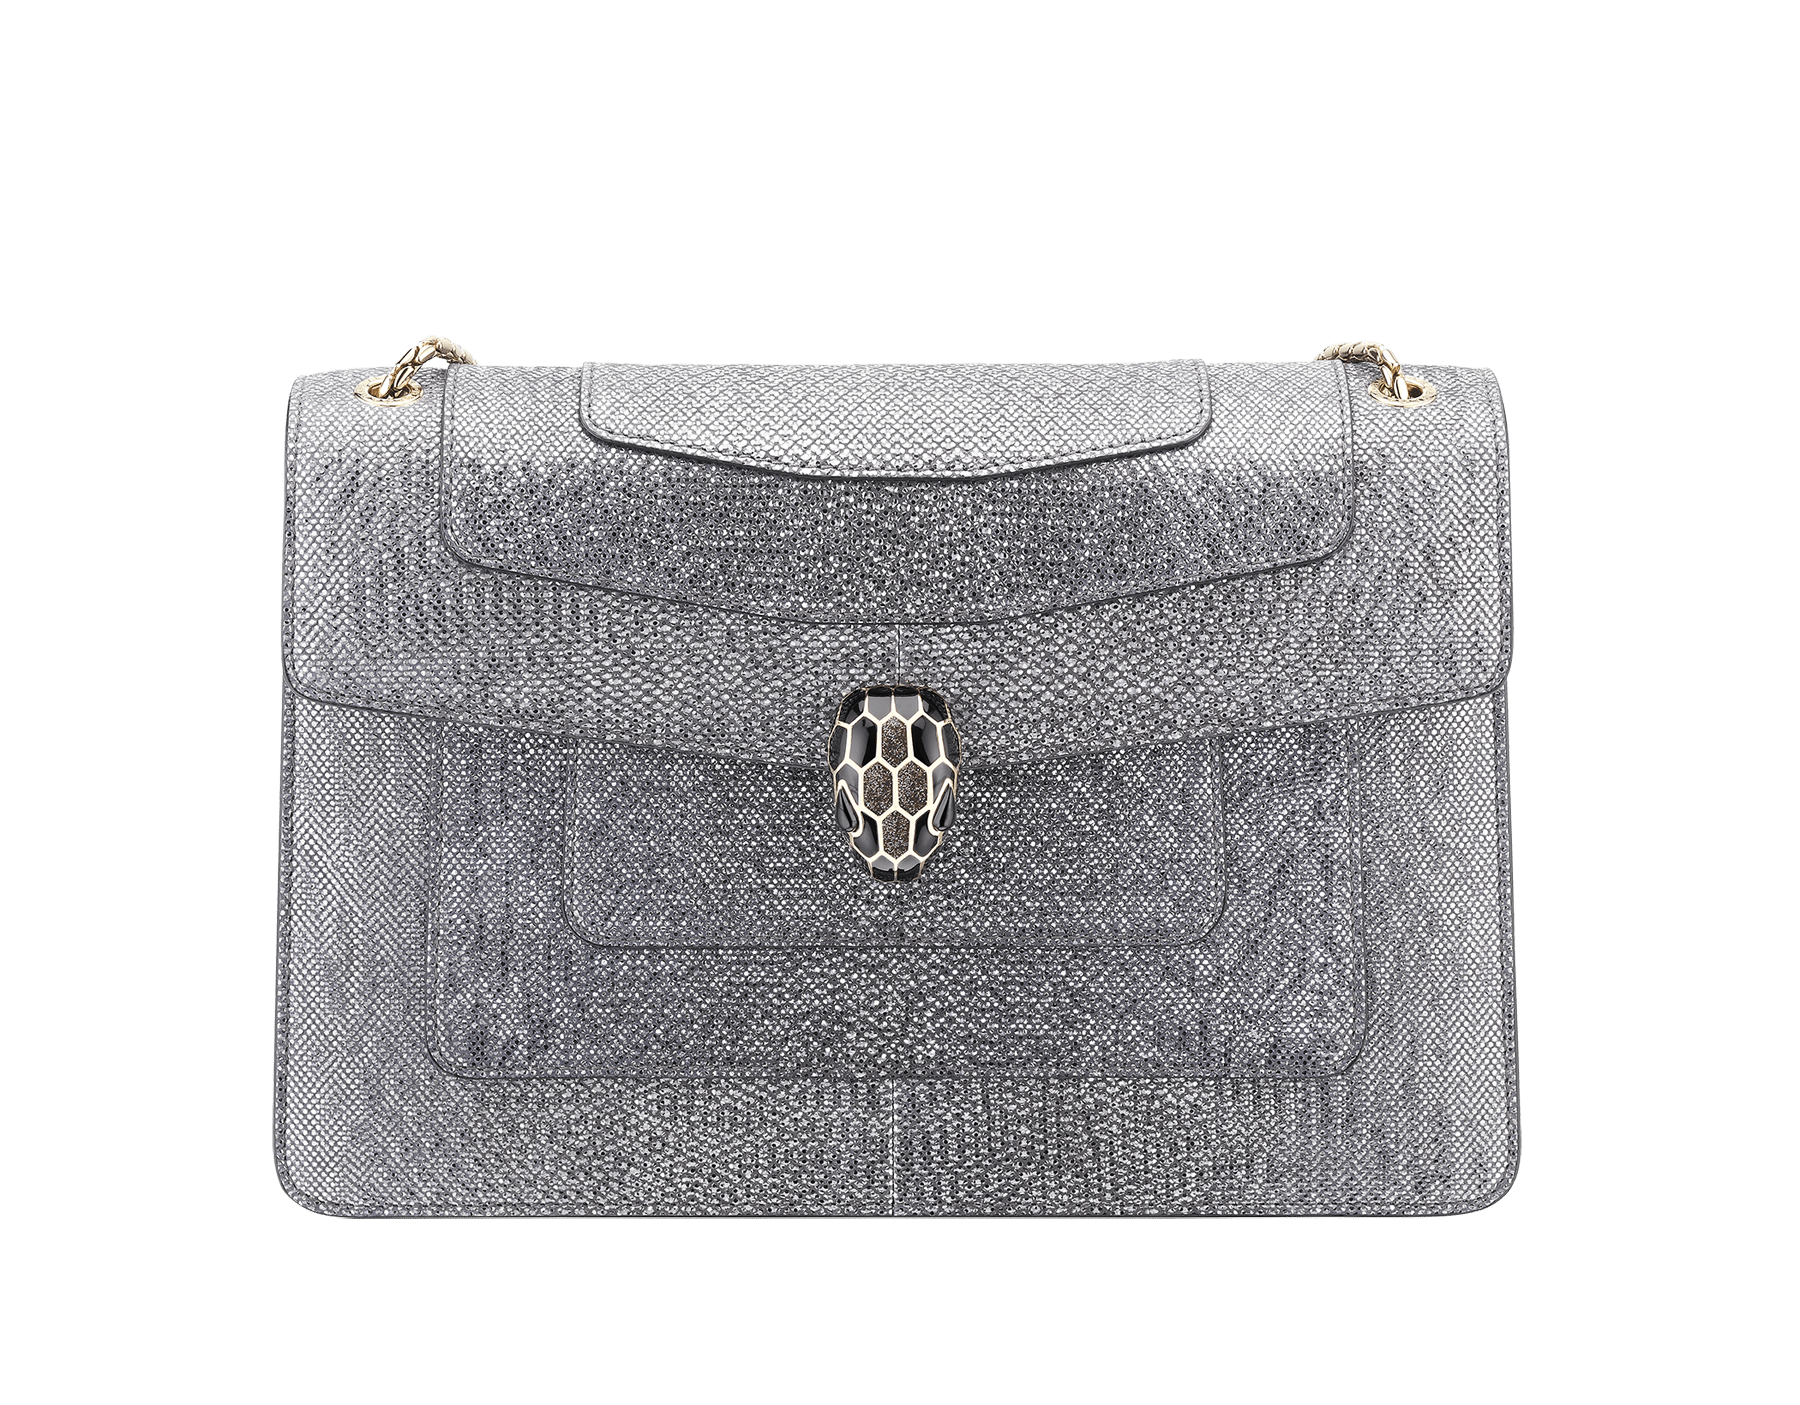 Flap cover bag Serpenti Forever in metallic silver karung skin. Brass light gold plated tempting snake head closure in shiny black and glitter silver enamel, with eyes in black onyx.  521-MK image 1